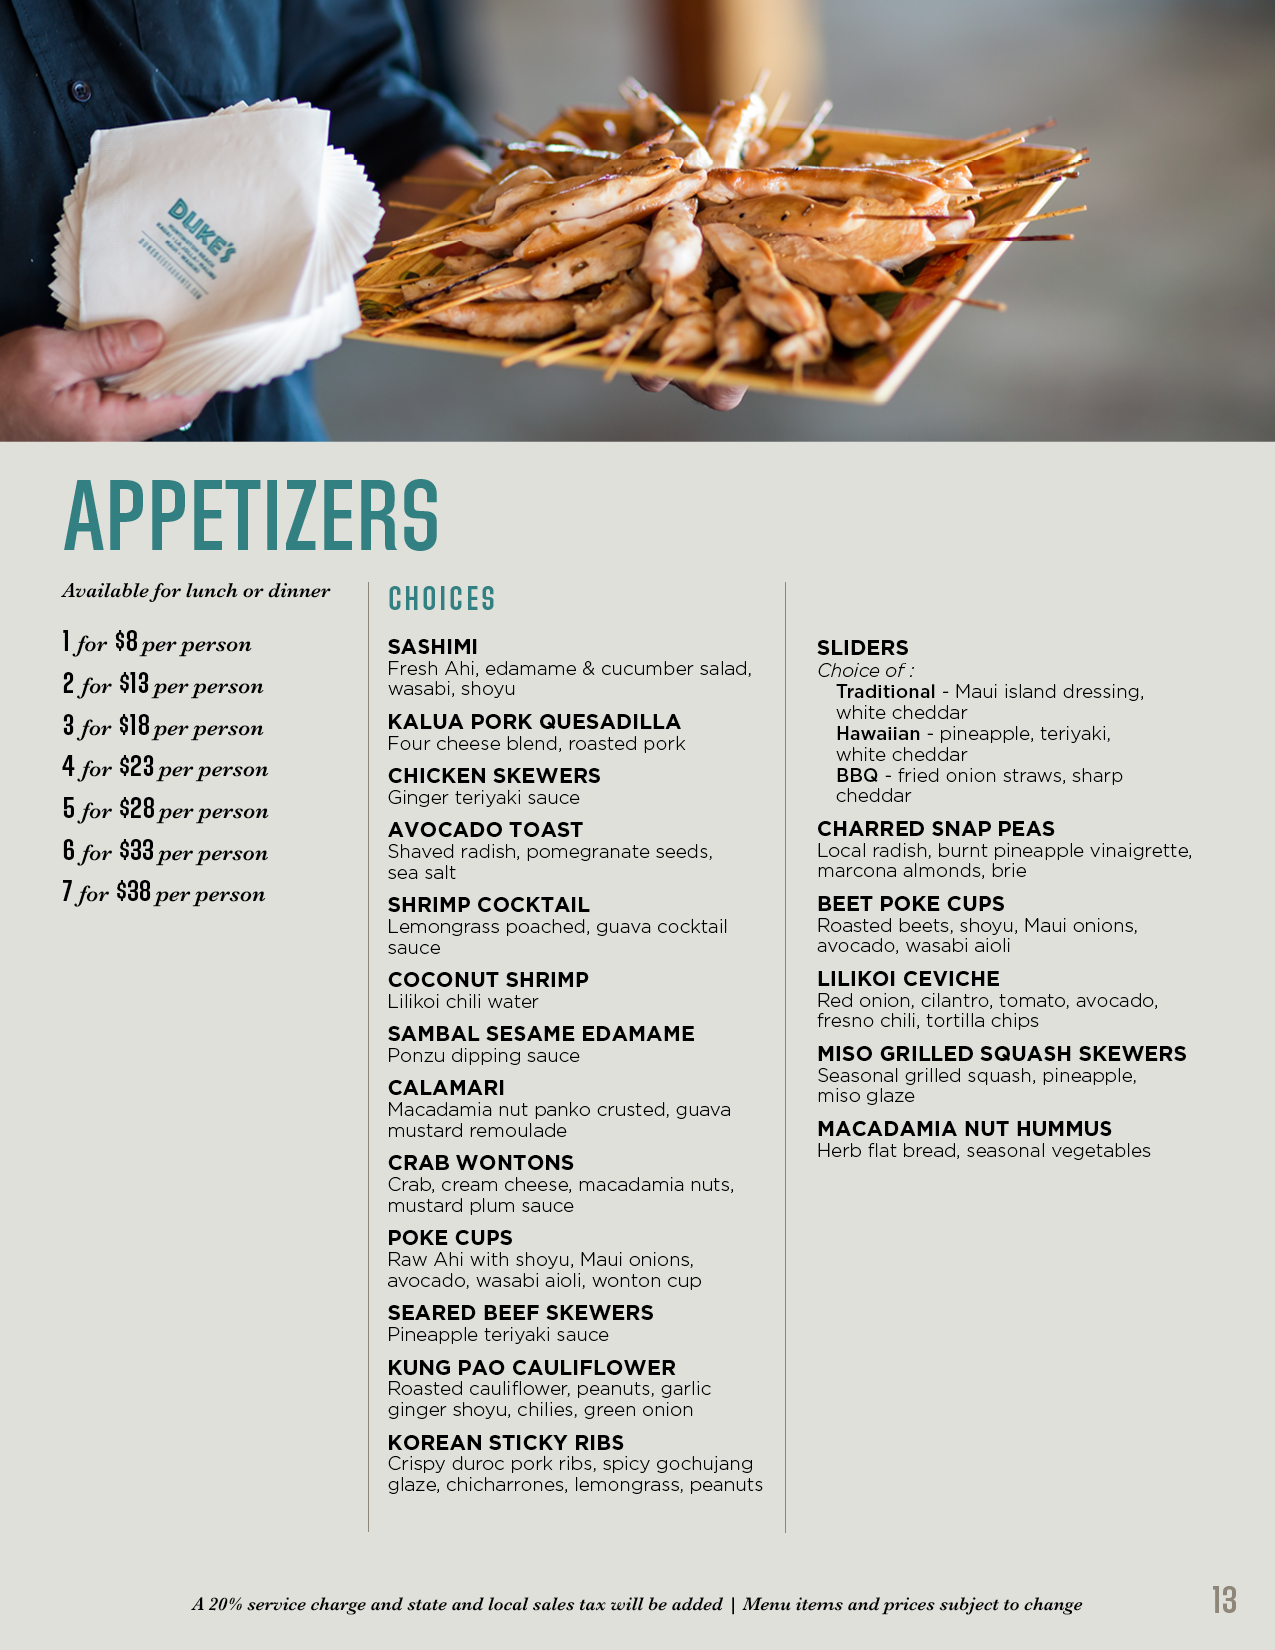 Appetizer menu with chicken skewers